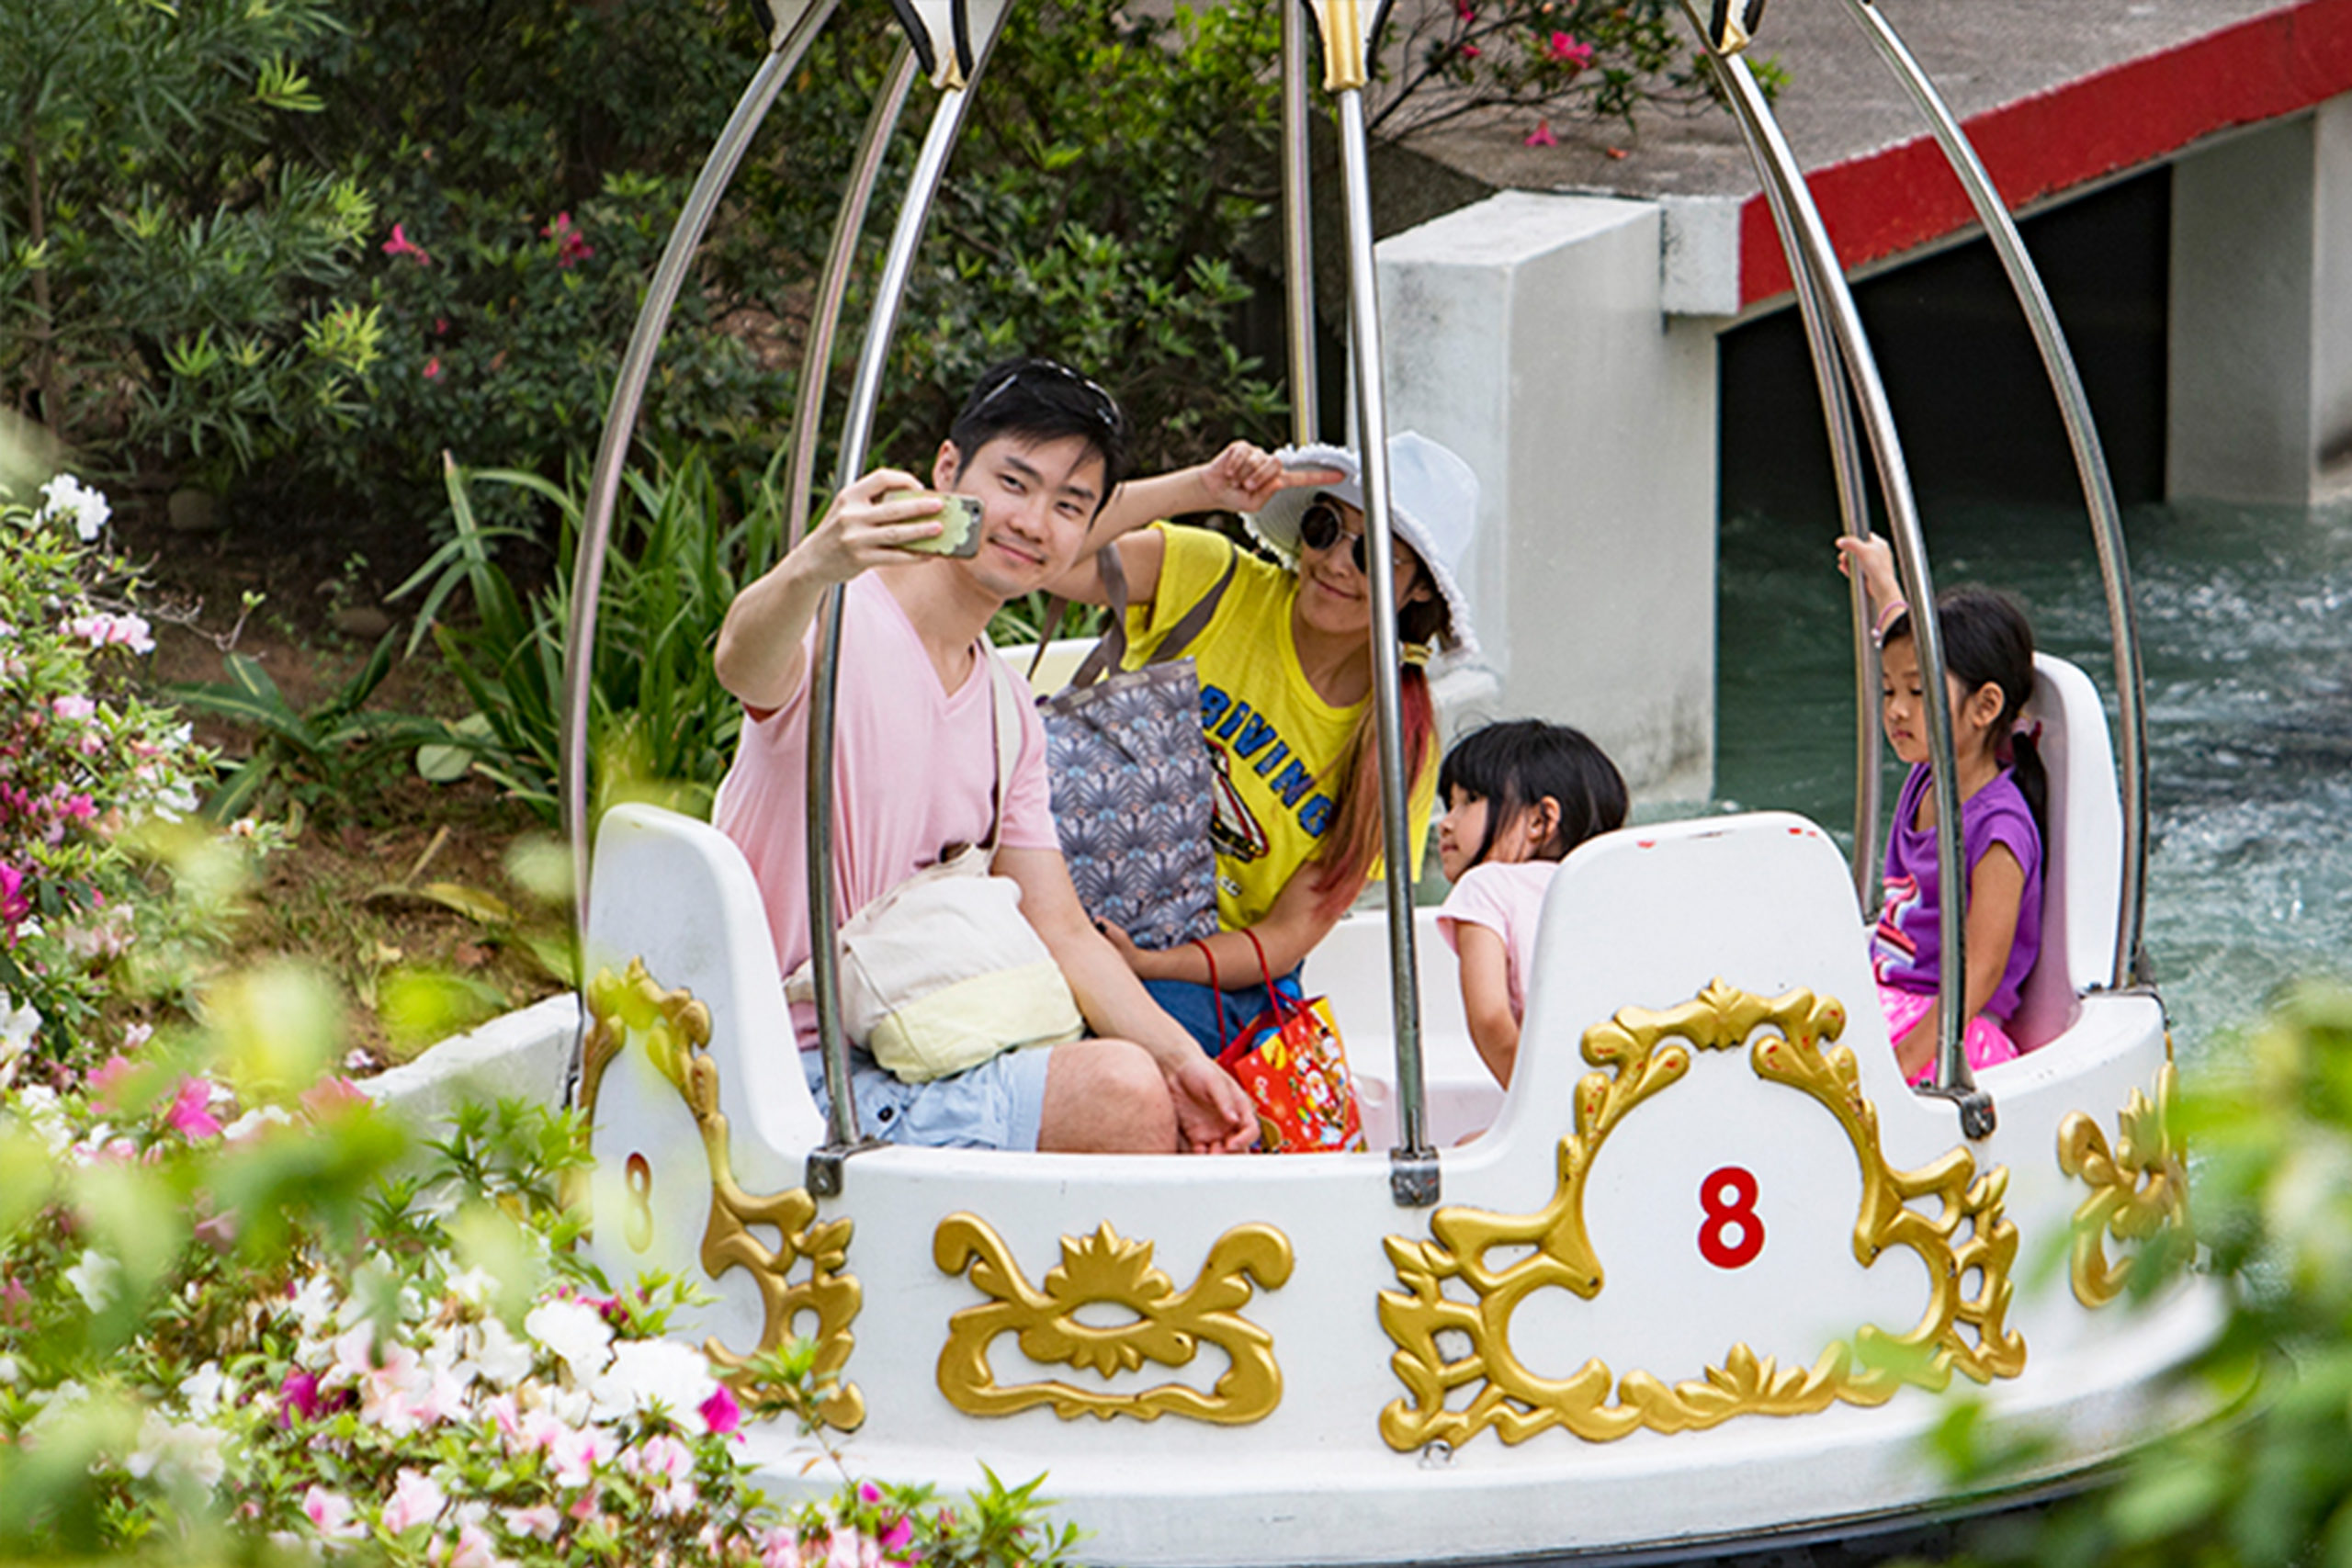 Interlink New Ride : Spin Boat Garden Boats at Lihpao Land 5